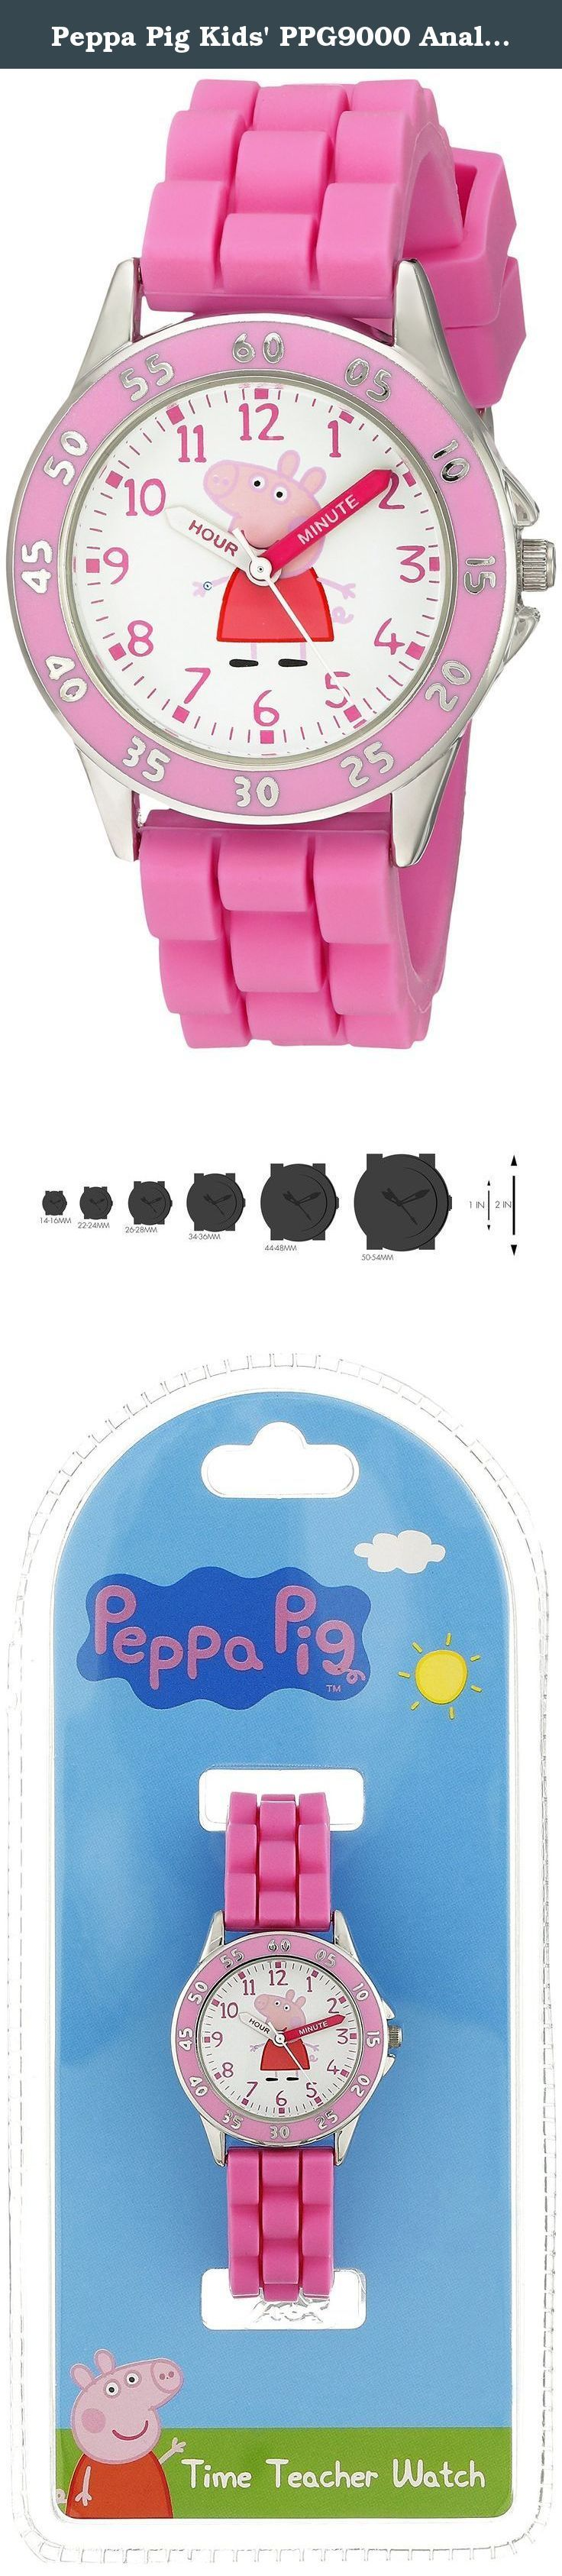 Peppa Pig Kids' PPG9000 Analog Display Japanese Quartz Pink Watch. Pegga Pig kids time teacher watch with pink strap. Peppa pig print in the dial and analog display. Japanese-quartz Movement. Case Diameter: 32mm. Not Water Resistant.